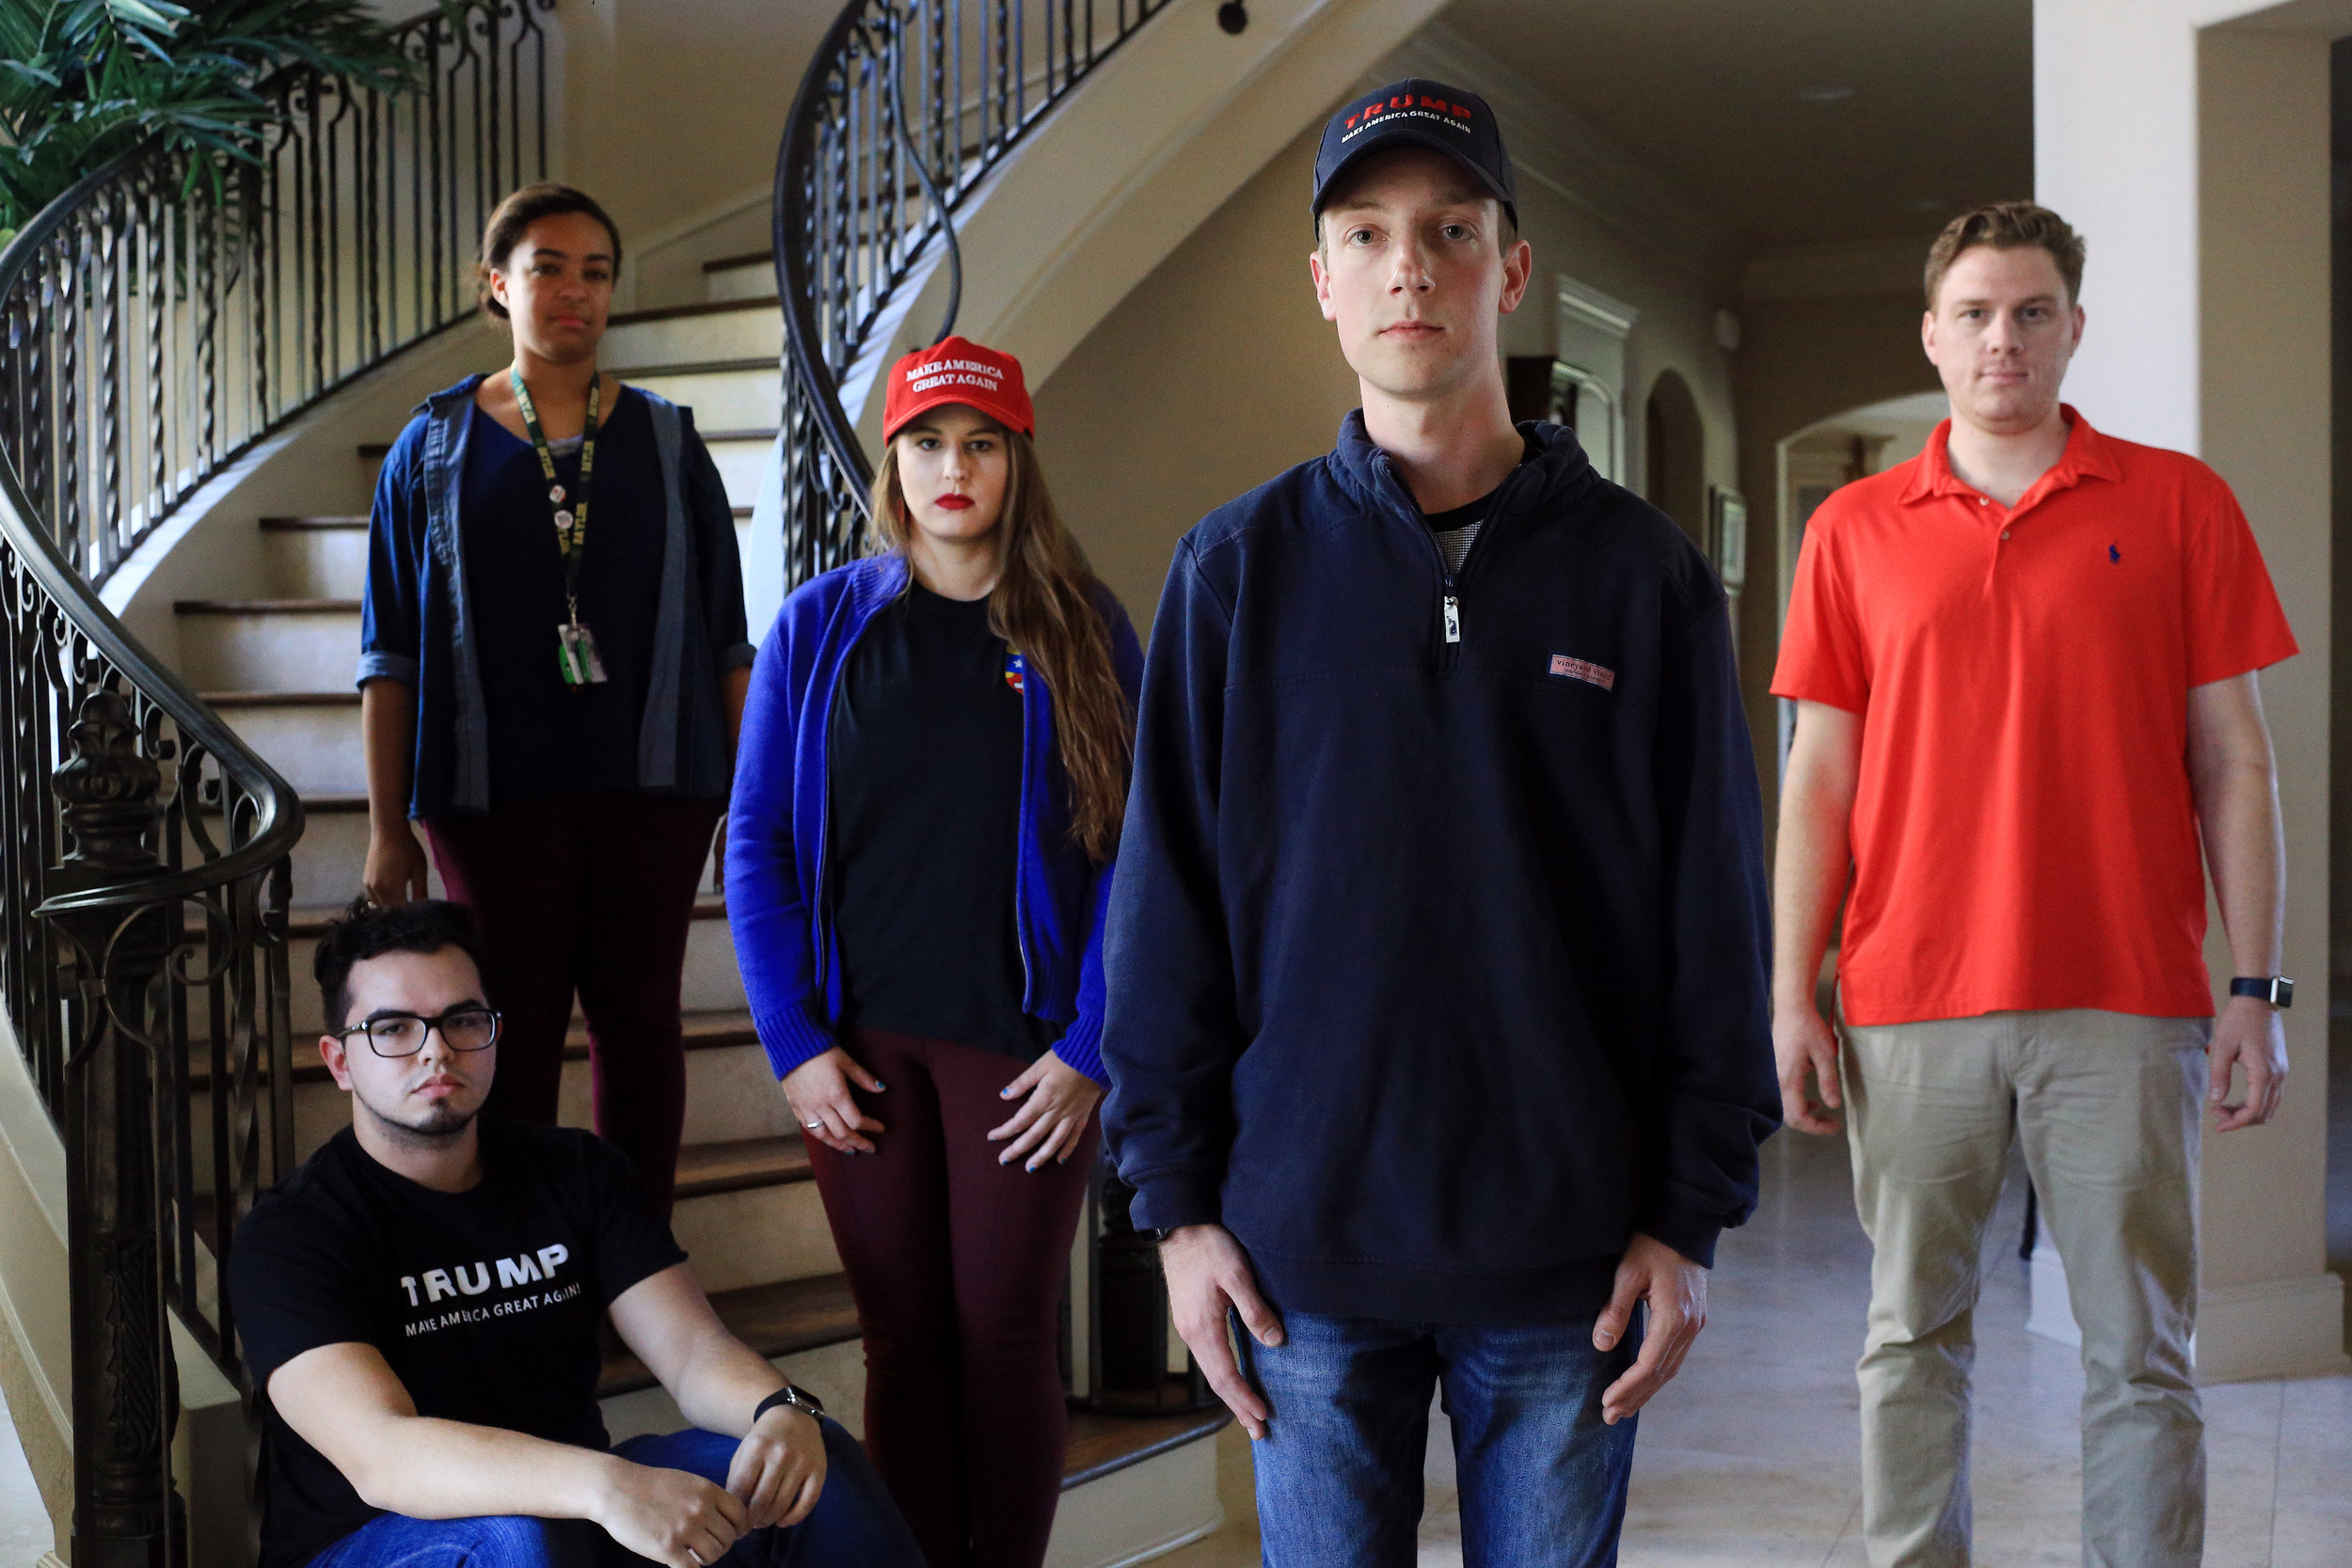 Local chapter presidents of Students for Trump use social media as a new form of grass-roots activism to rally supporters across the greater Houston area. After having worked together online, the members met for the first time on Thursday, March 25 at a member's gated community home in Missouri City.